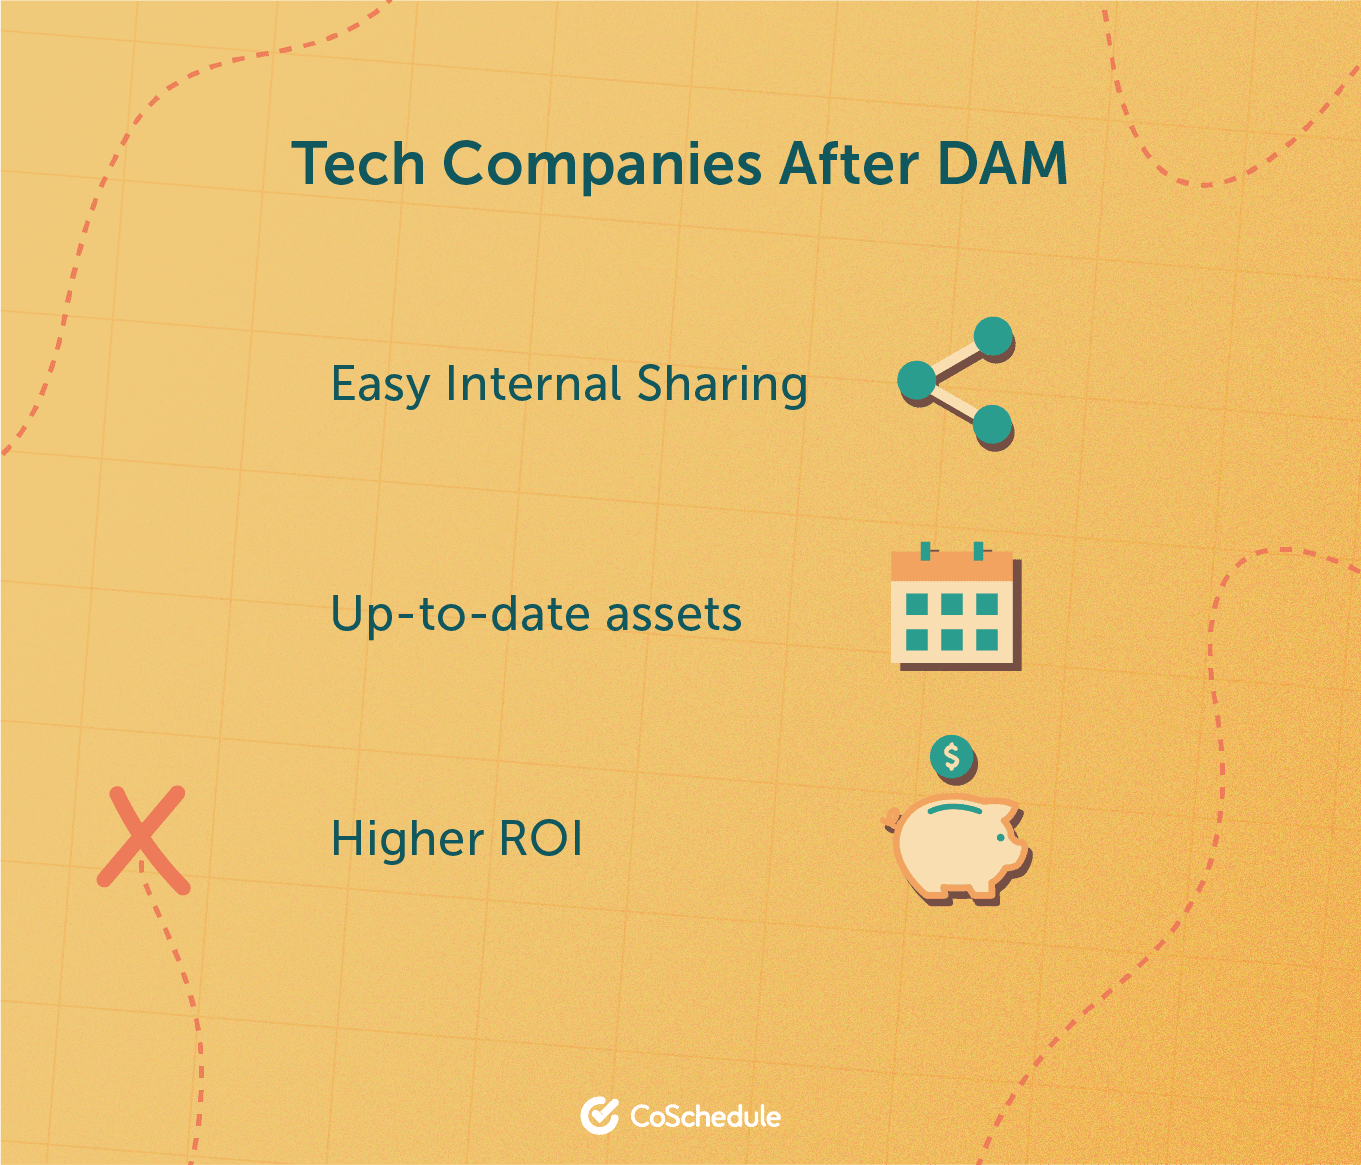 What tech companies look like after DAM.